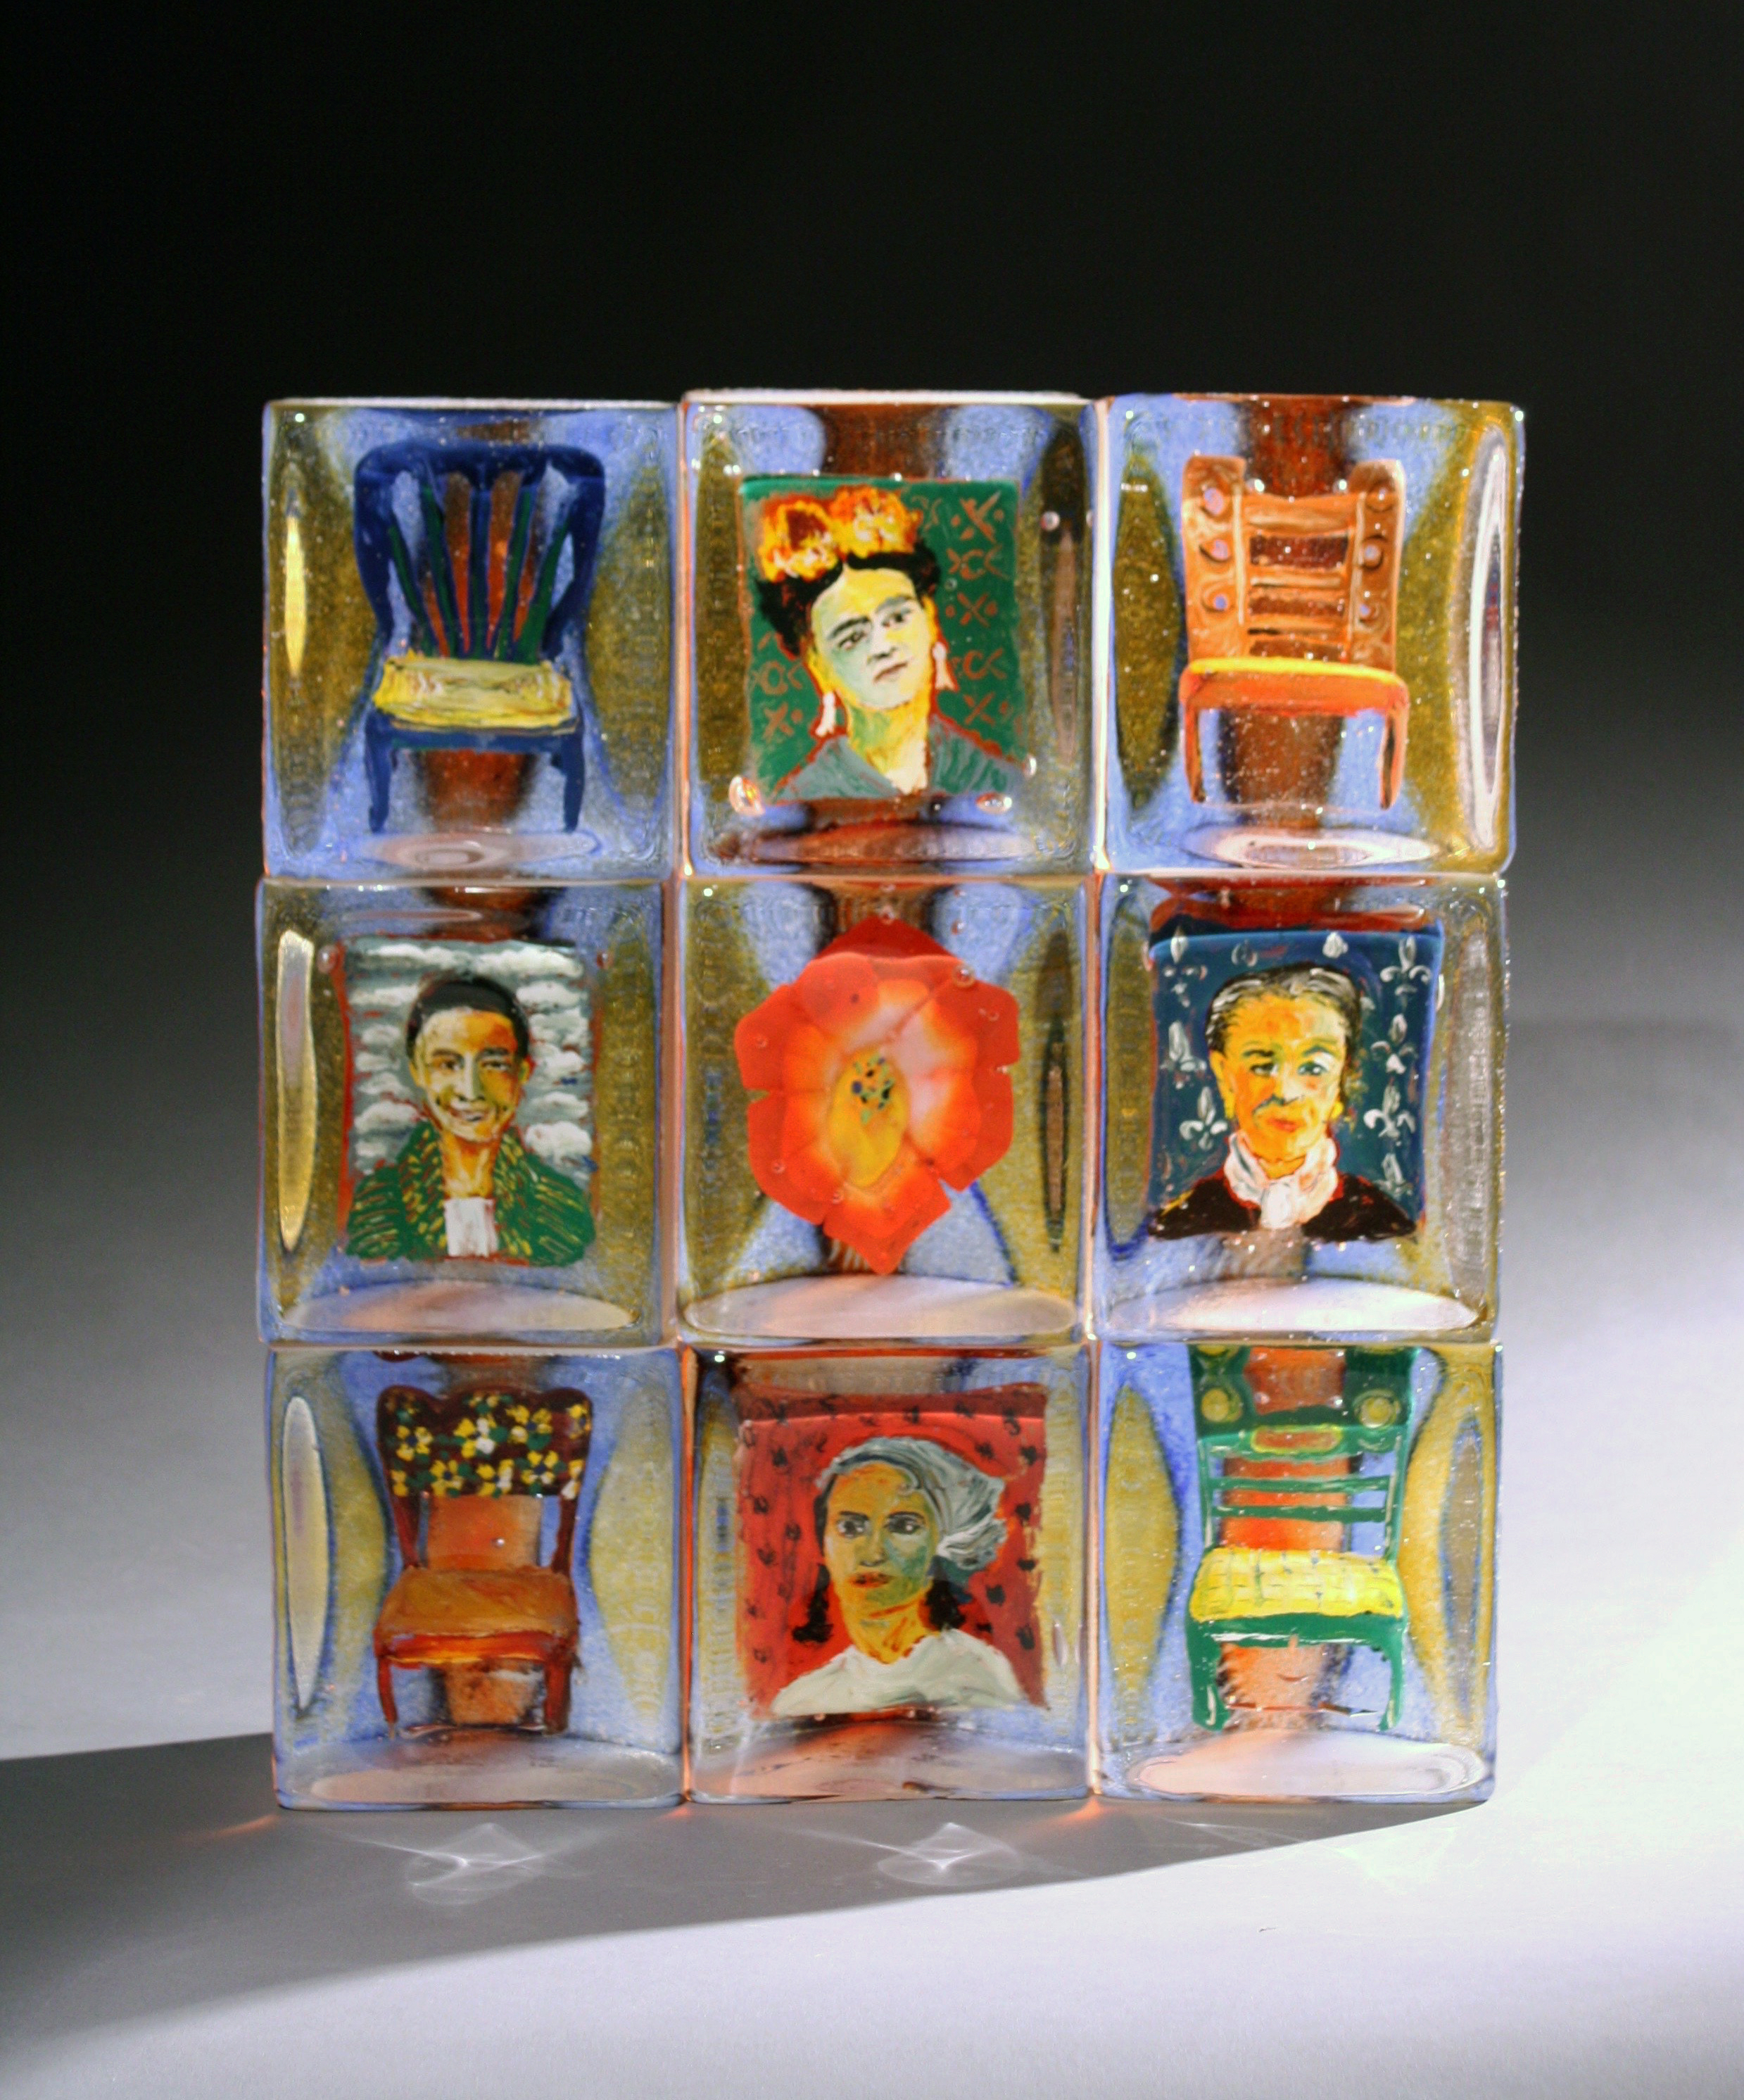 Four Artists (2015)  was recently acquired for  Bergstrom Mahler Museum of Glass  thanks to gifted funds from the family of Leon DeJongh.